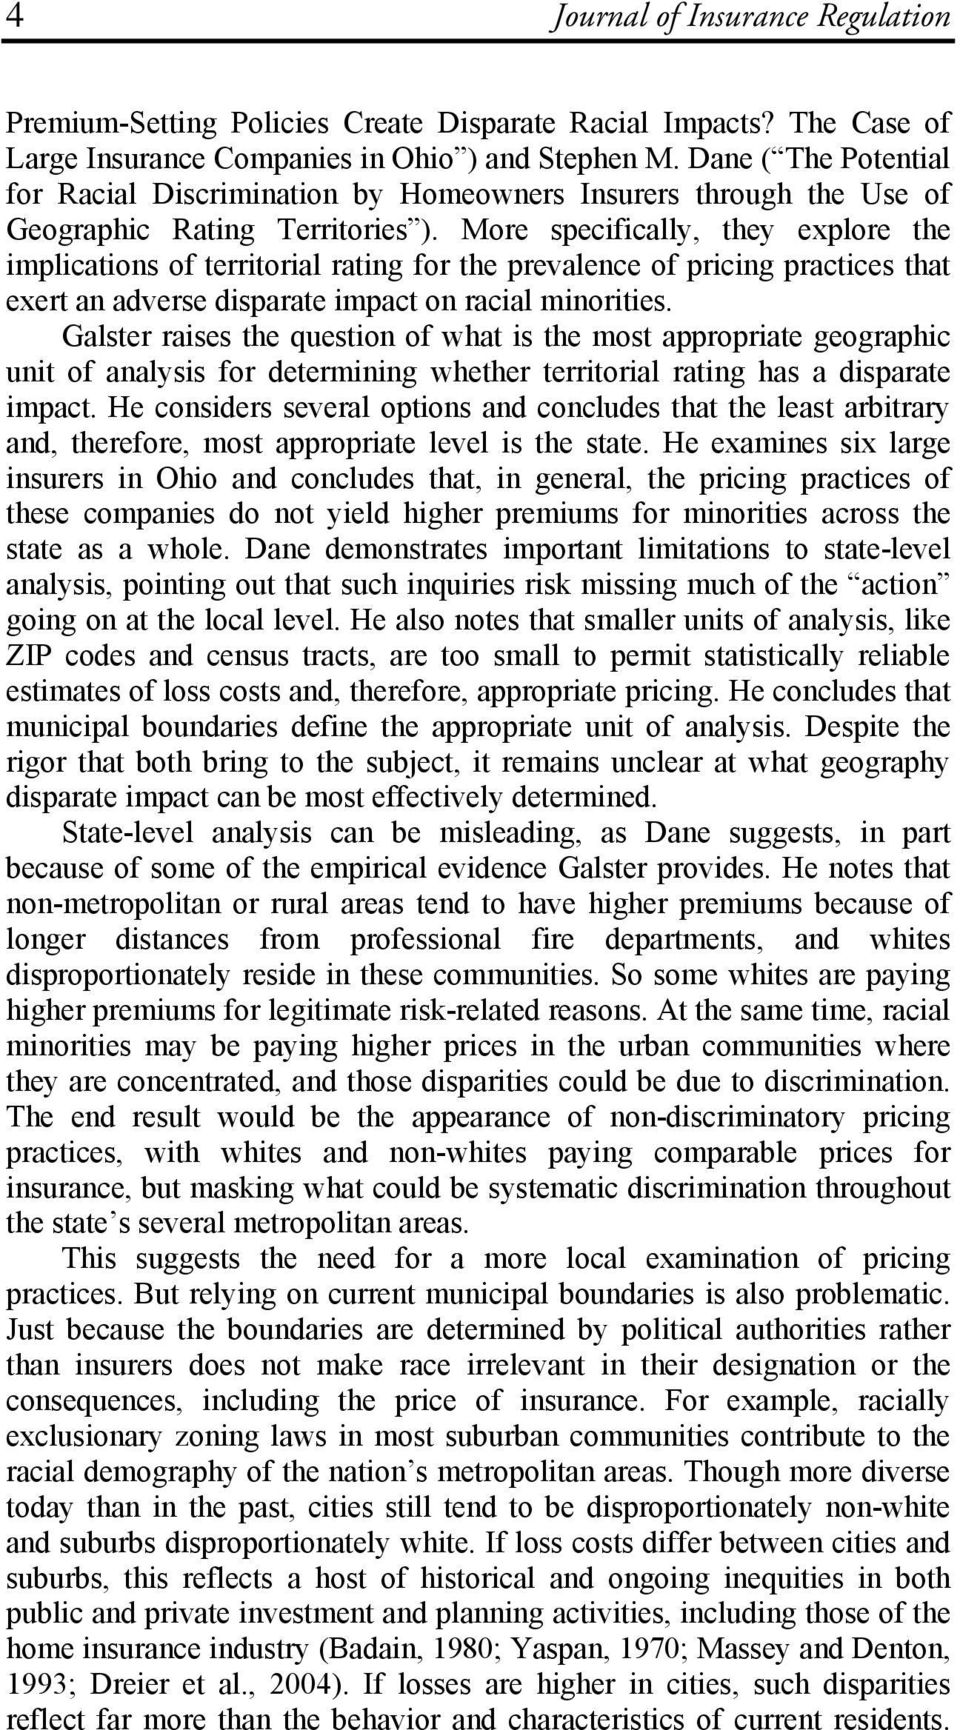 More specifically, they explore the implications of territorial rating for the prevalence of pricing practices that exert an adverse disparate impact on racial minorities.